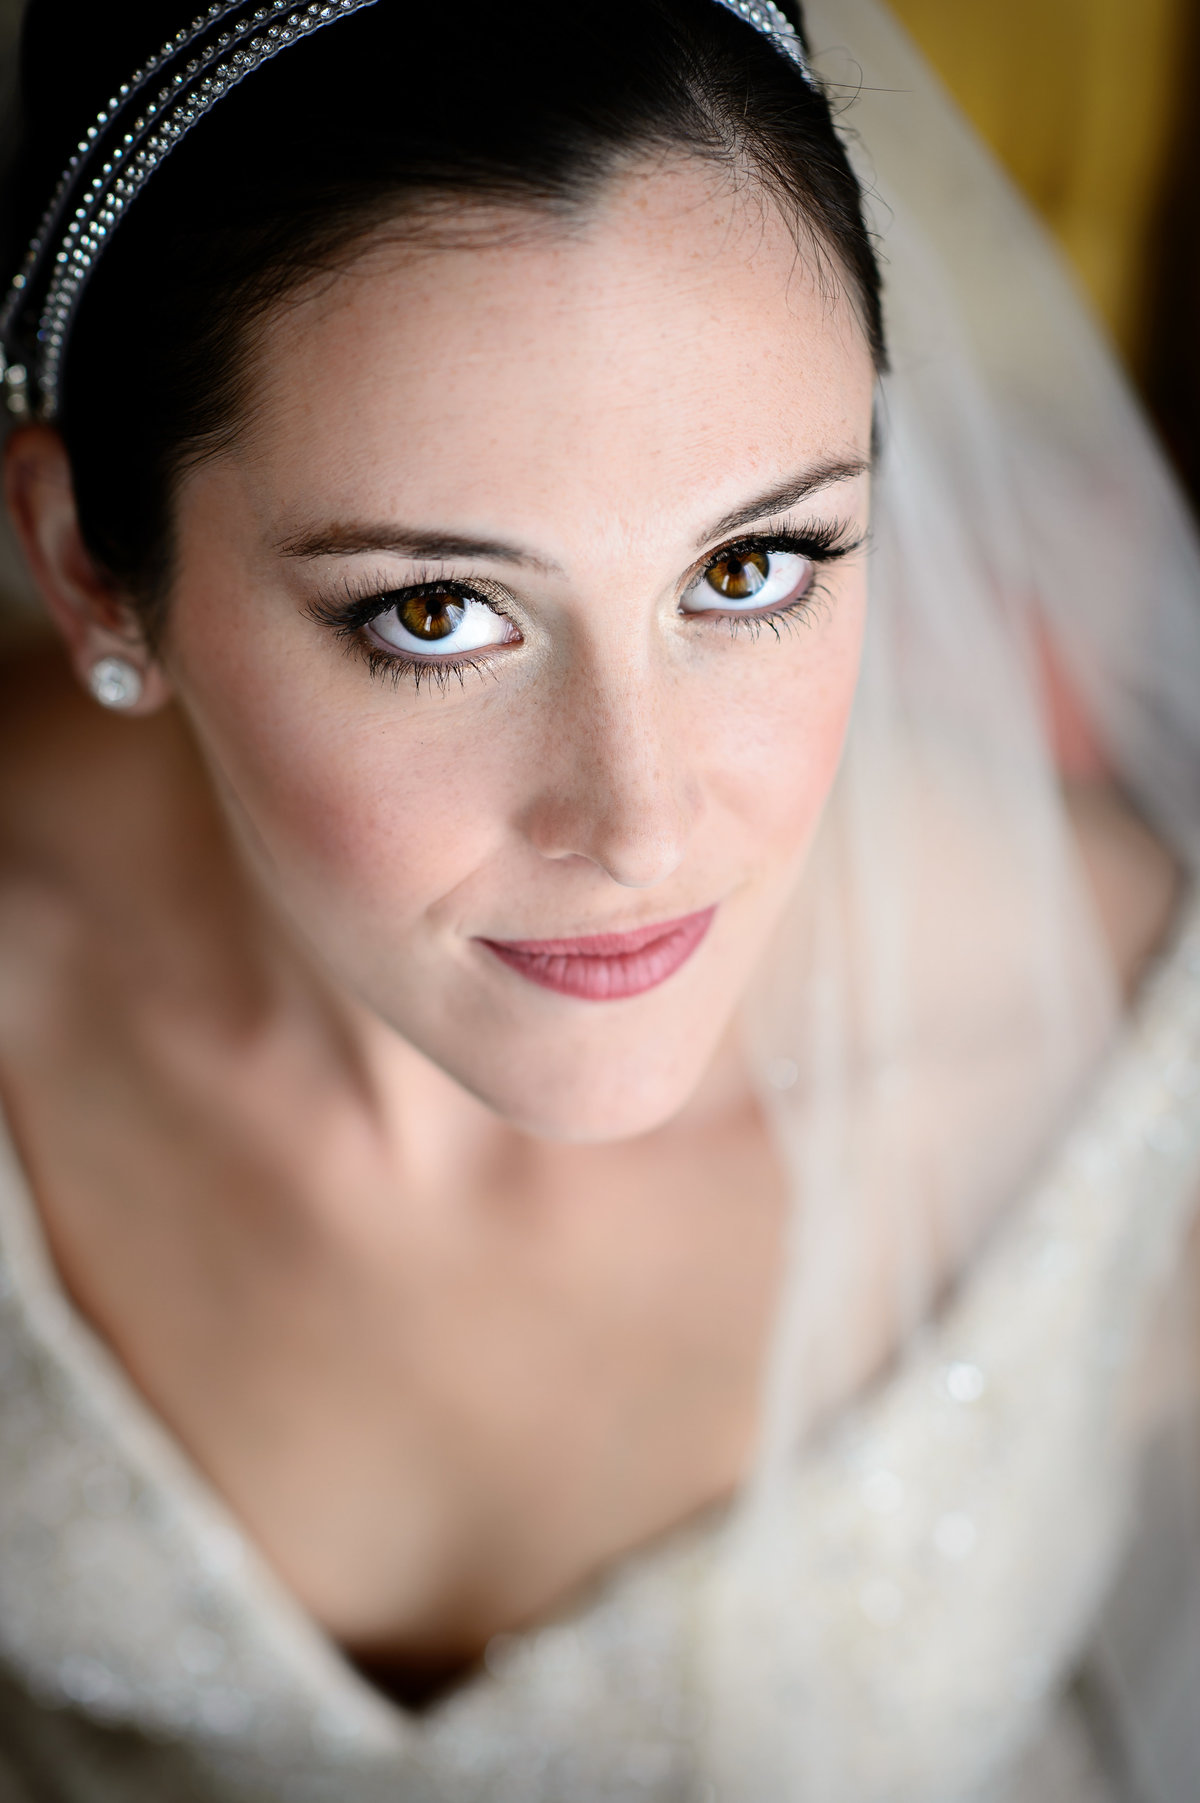 Baltimore Wedding Photographer-Portraits-48